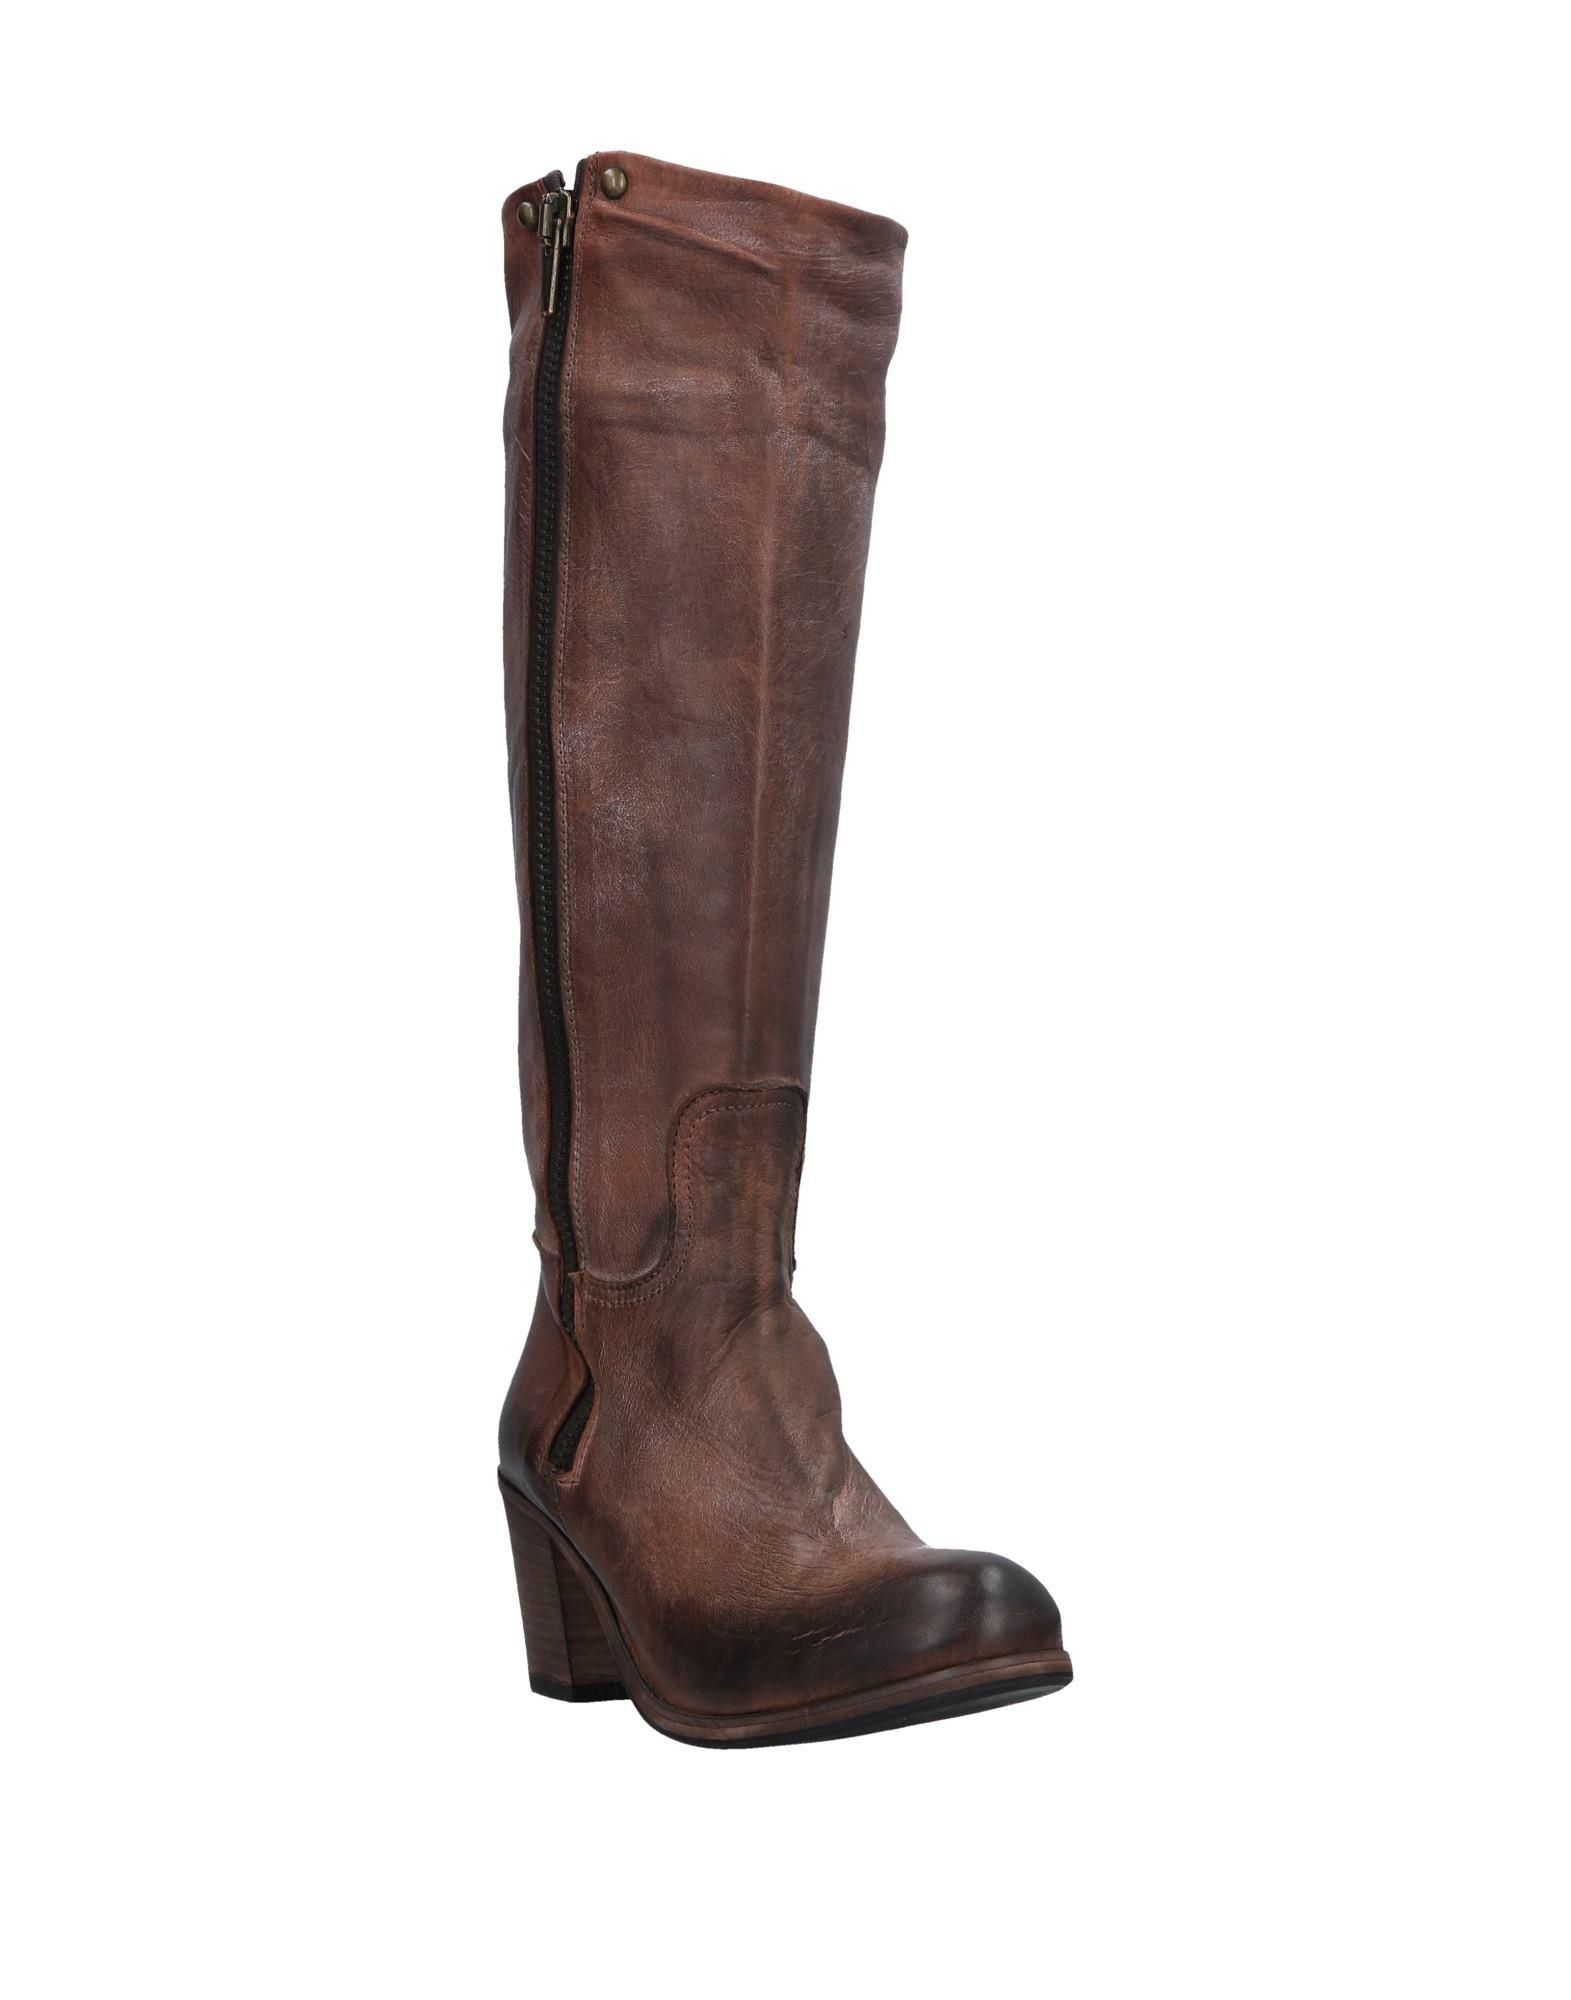 Kobra Leather Boots in Brown